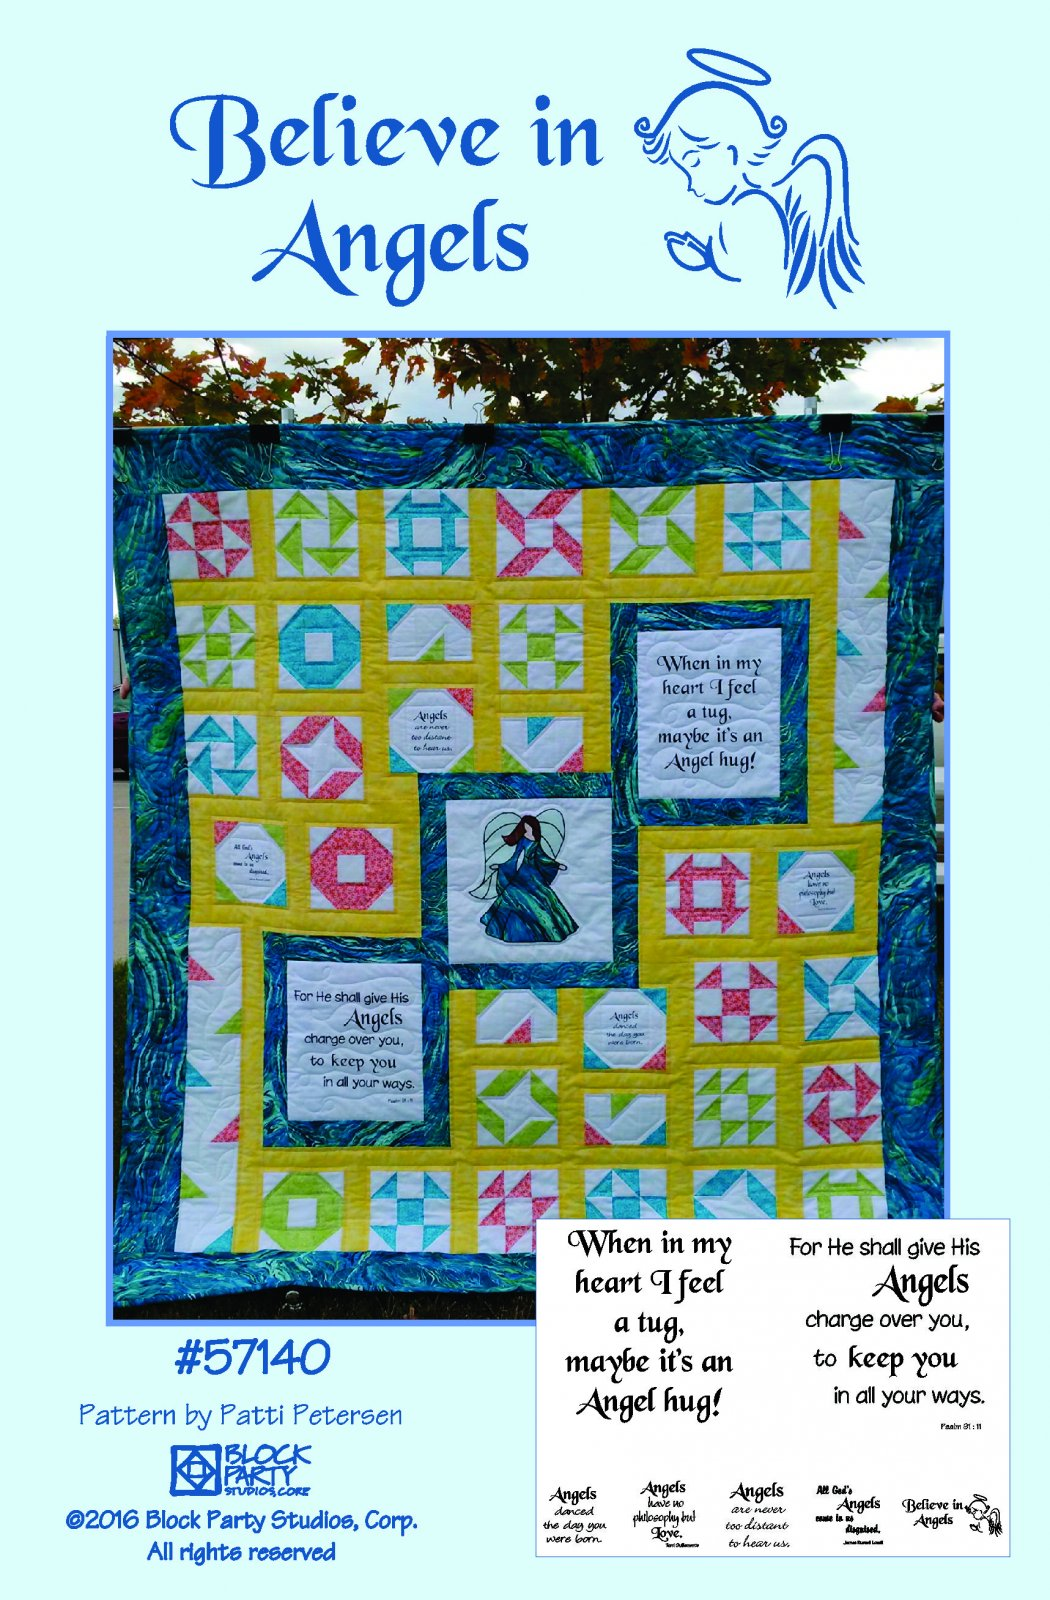 Believe in Angels Pattern & Panel